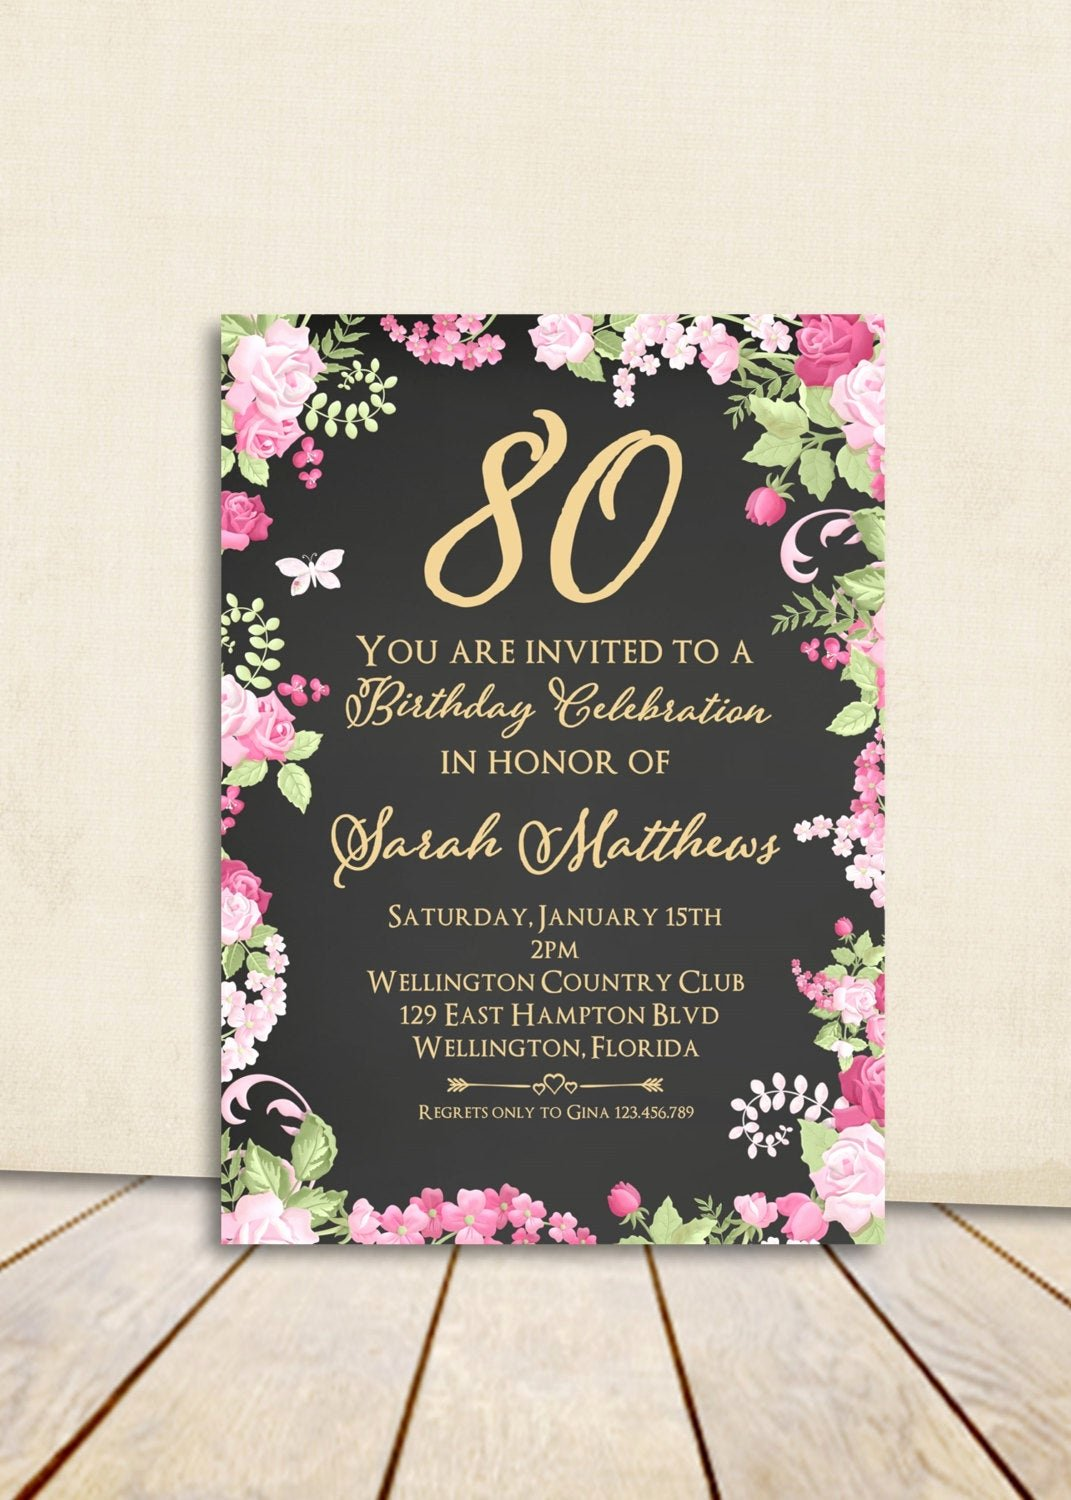 80th Birthday Party Invitations Elegant Cottage Chic Chalkboard 80th Birthday Invitation Any Age Adult